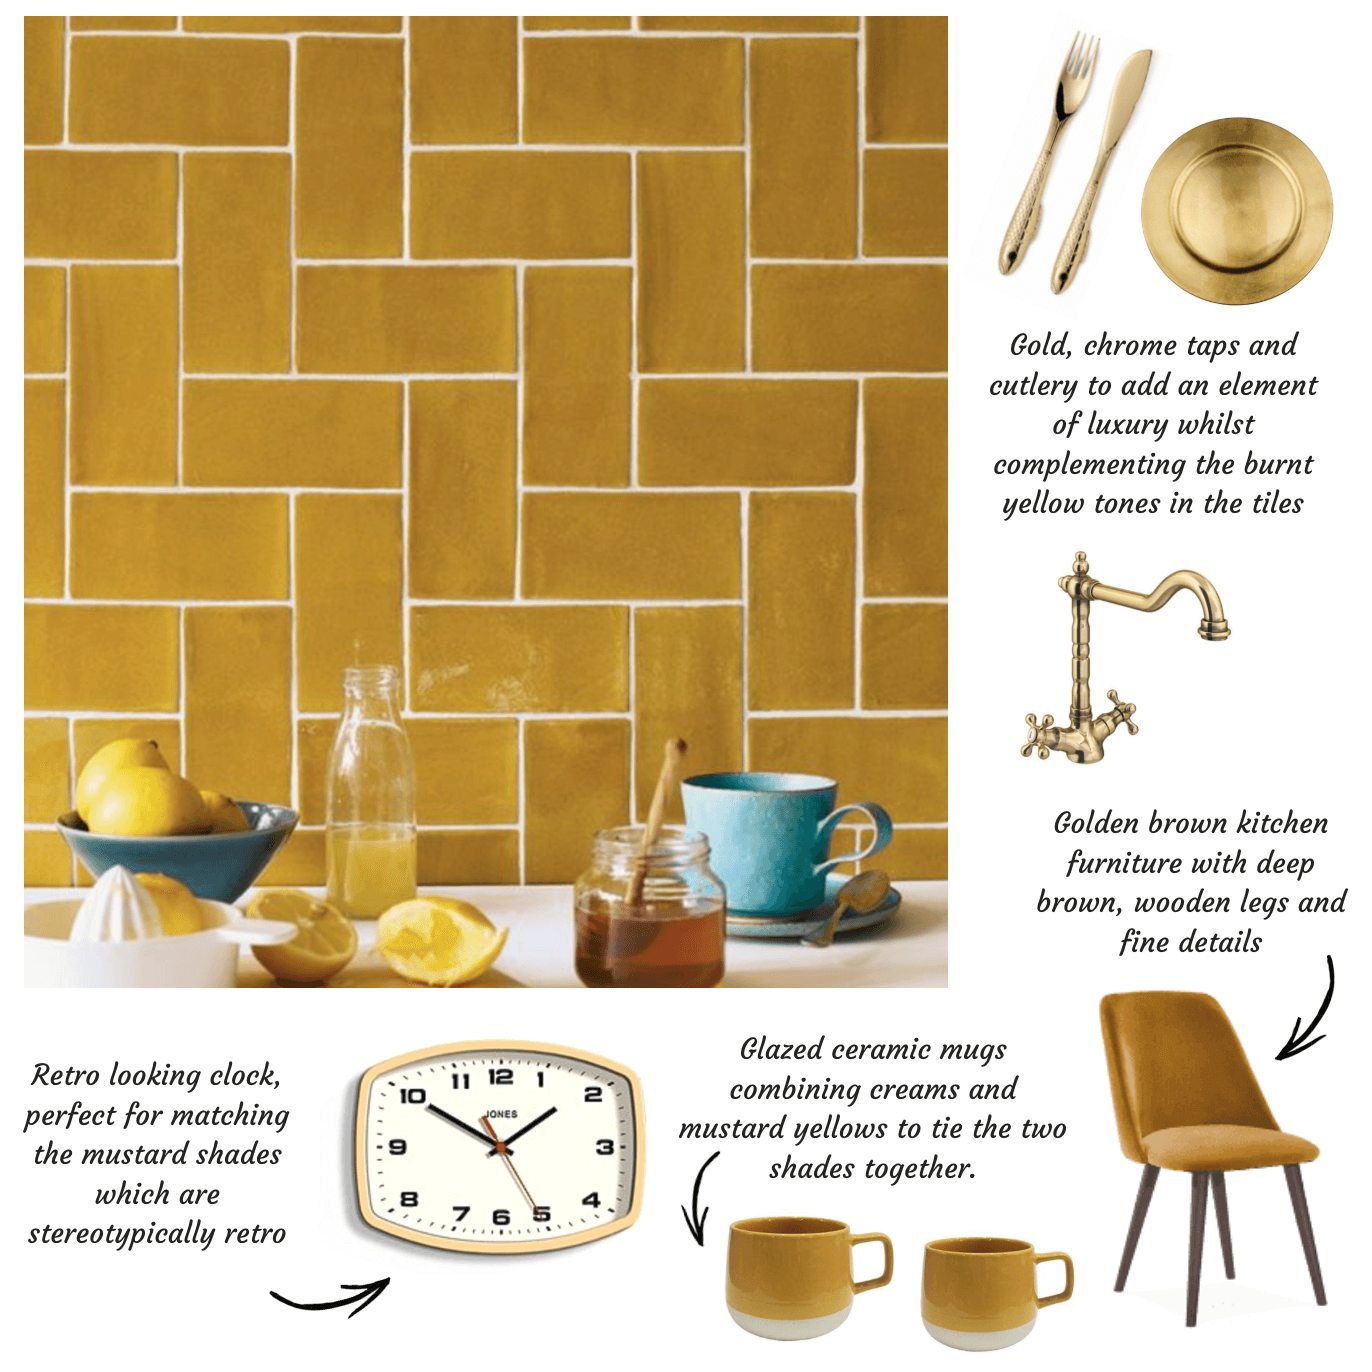 5 Reasons You'll Benefit From Having A Bold, Bright Kitchen Serene Ocre